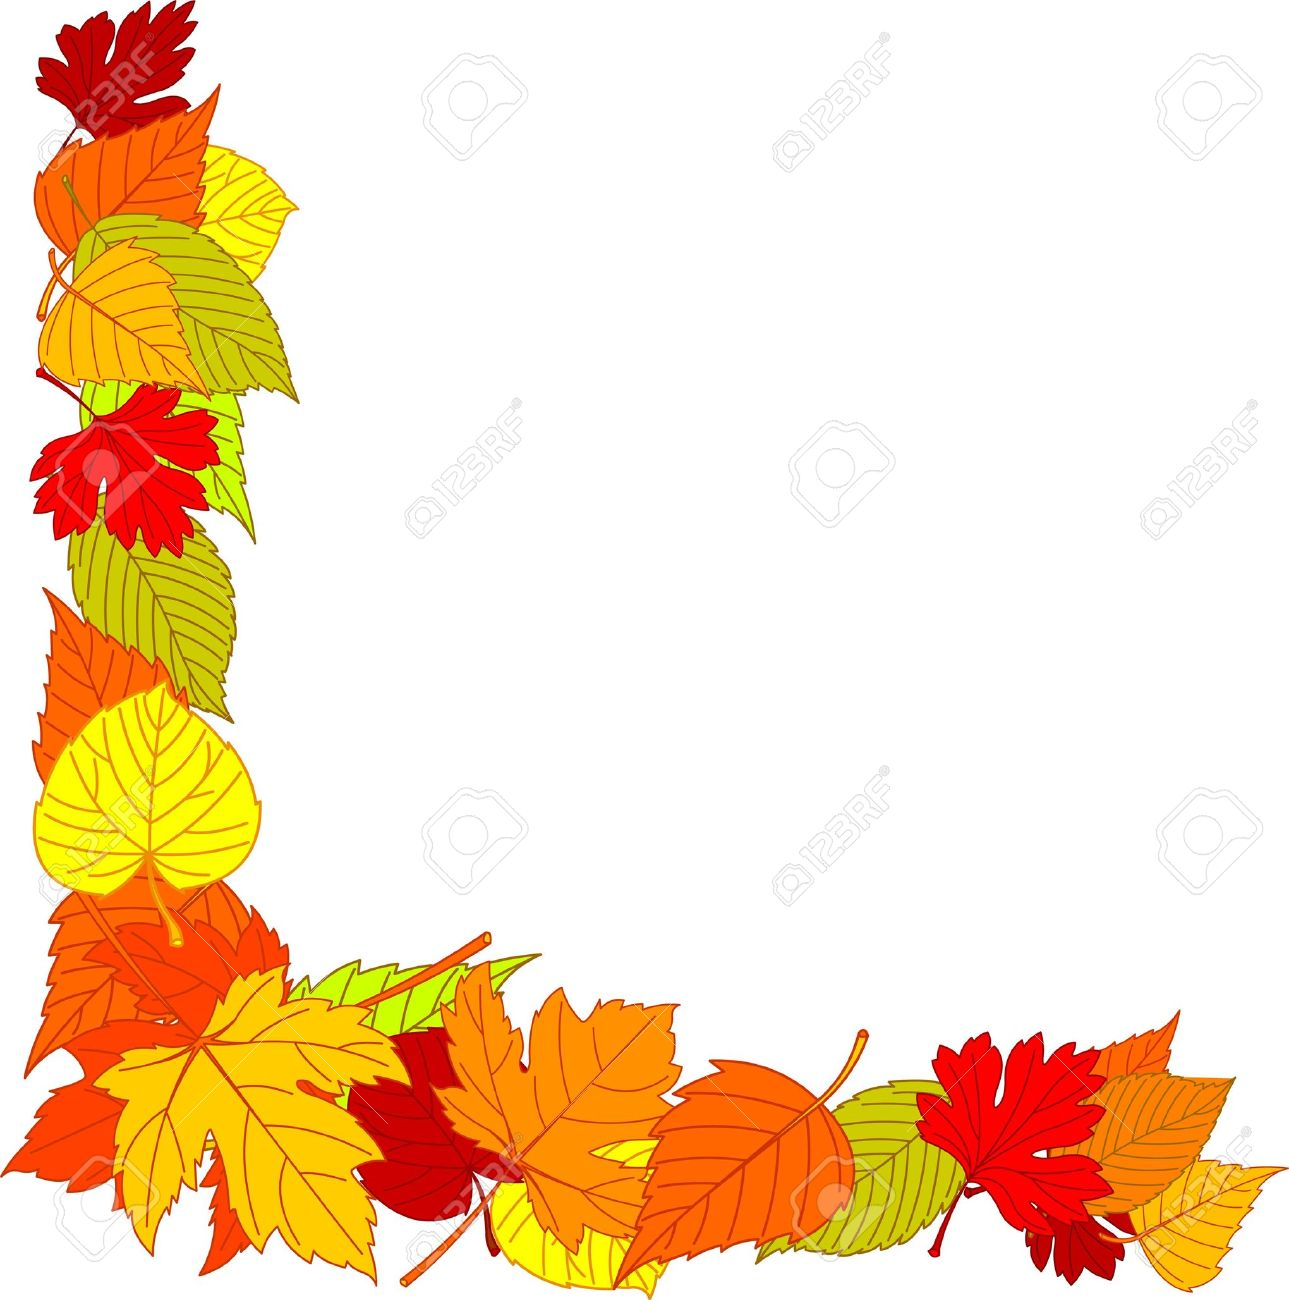 fall leaves page corner borders royalty free cliparts vectors and rh 123rf com Autumn Sun Clip Art Fall Clip Art